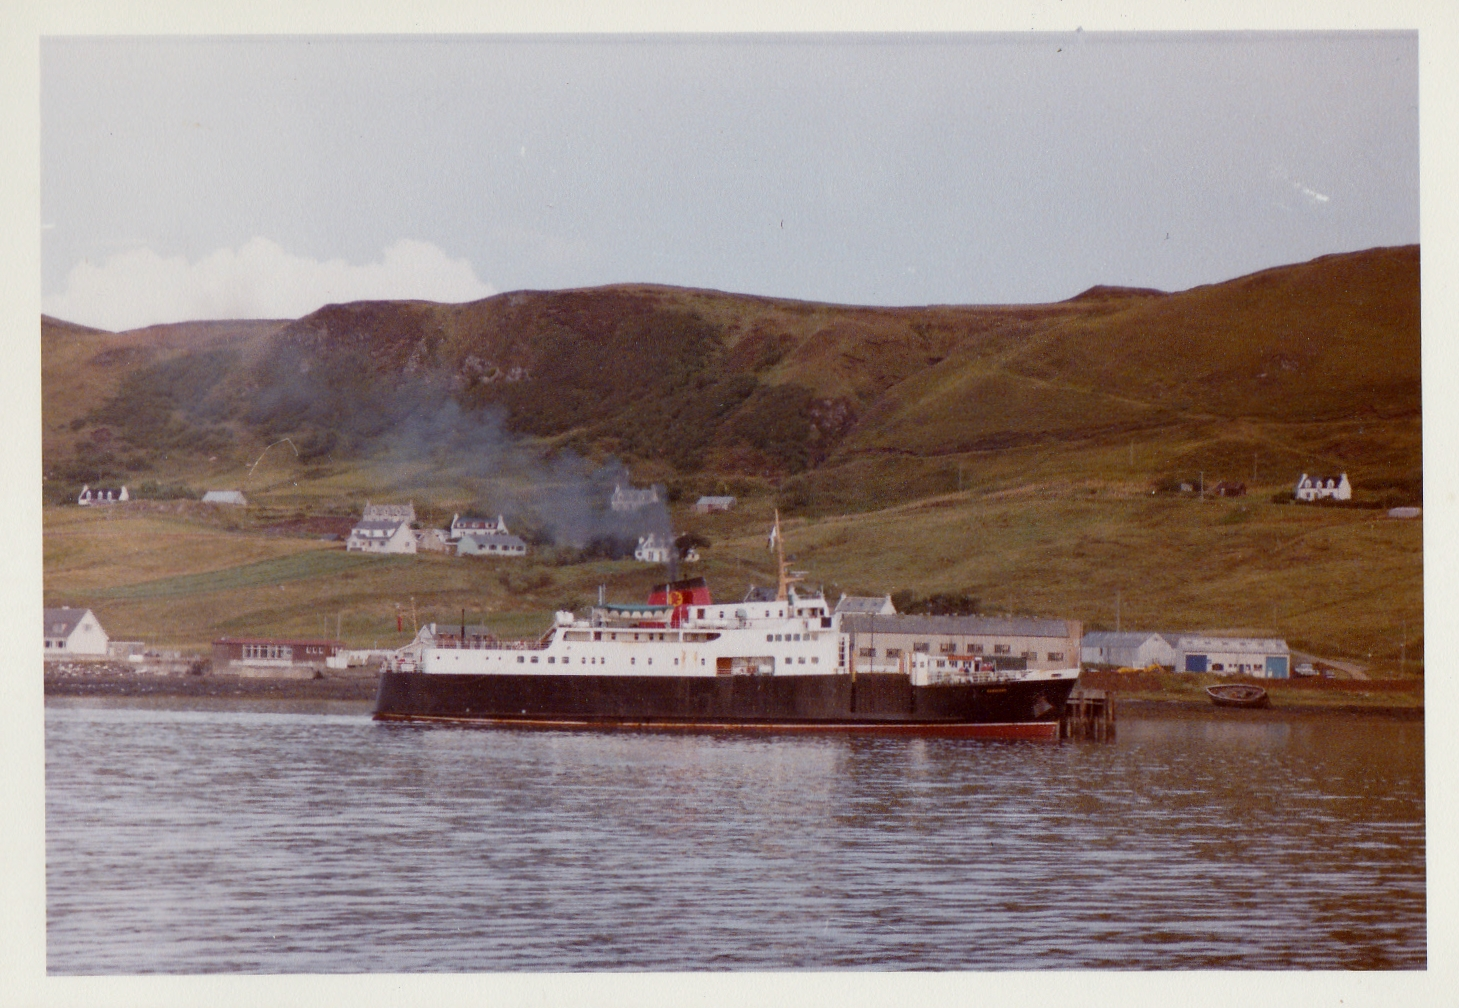 Hebrides at Uig (Jim Aikman Smith)